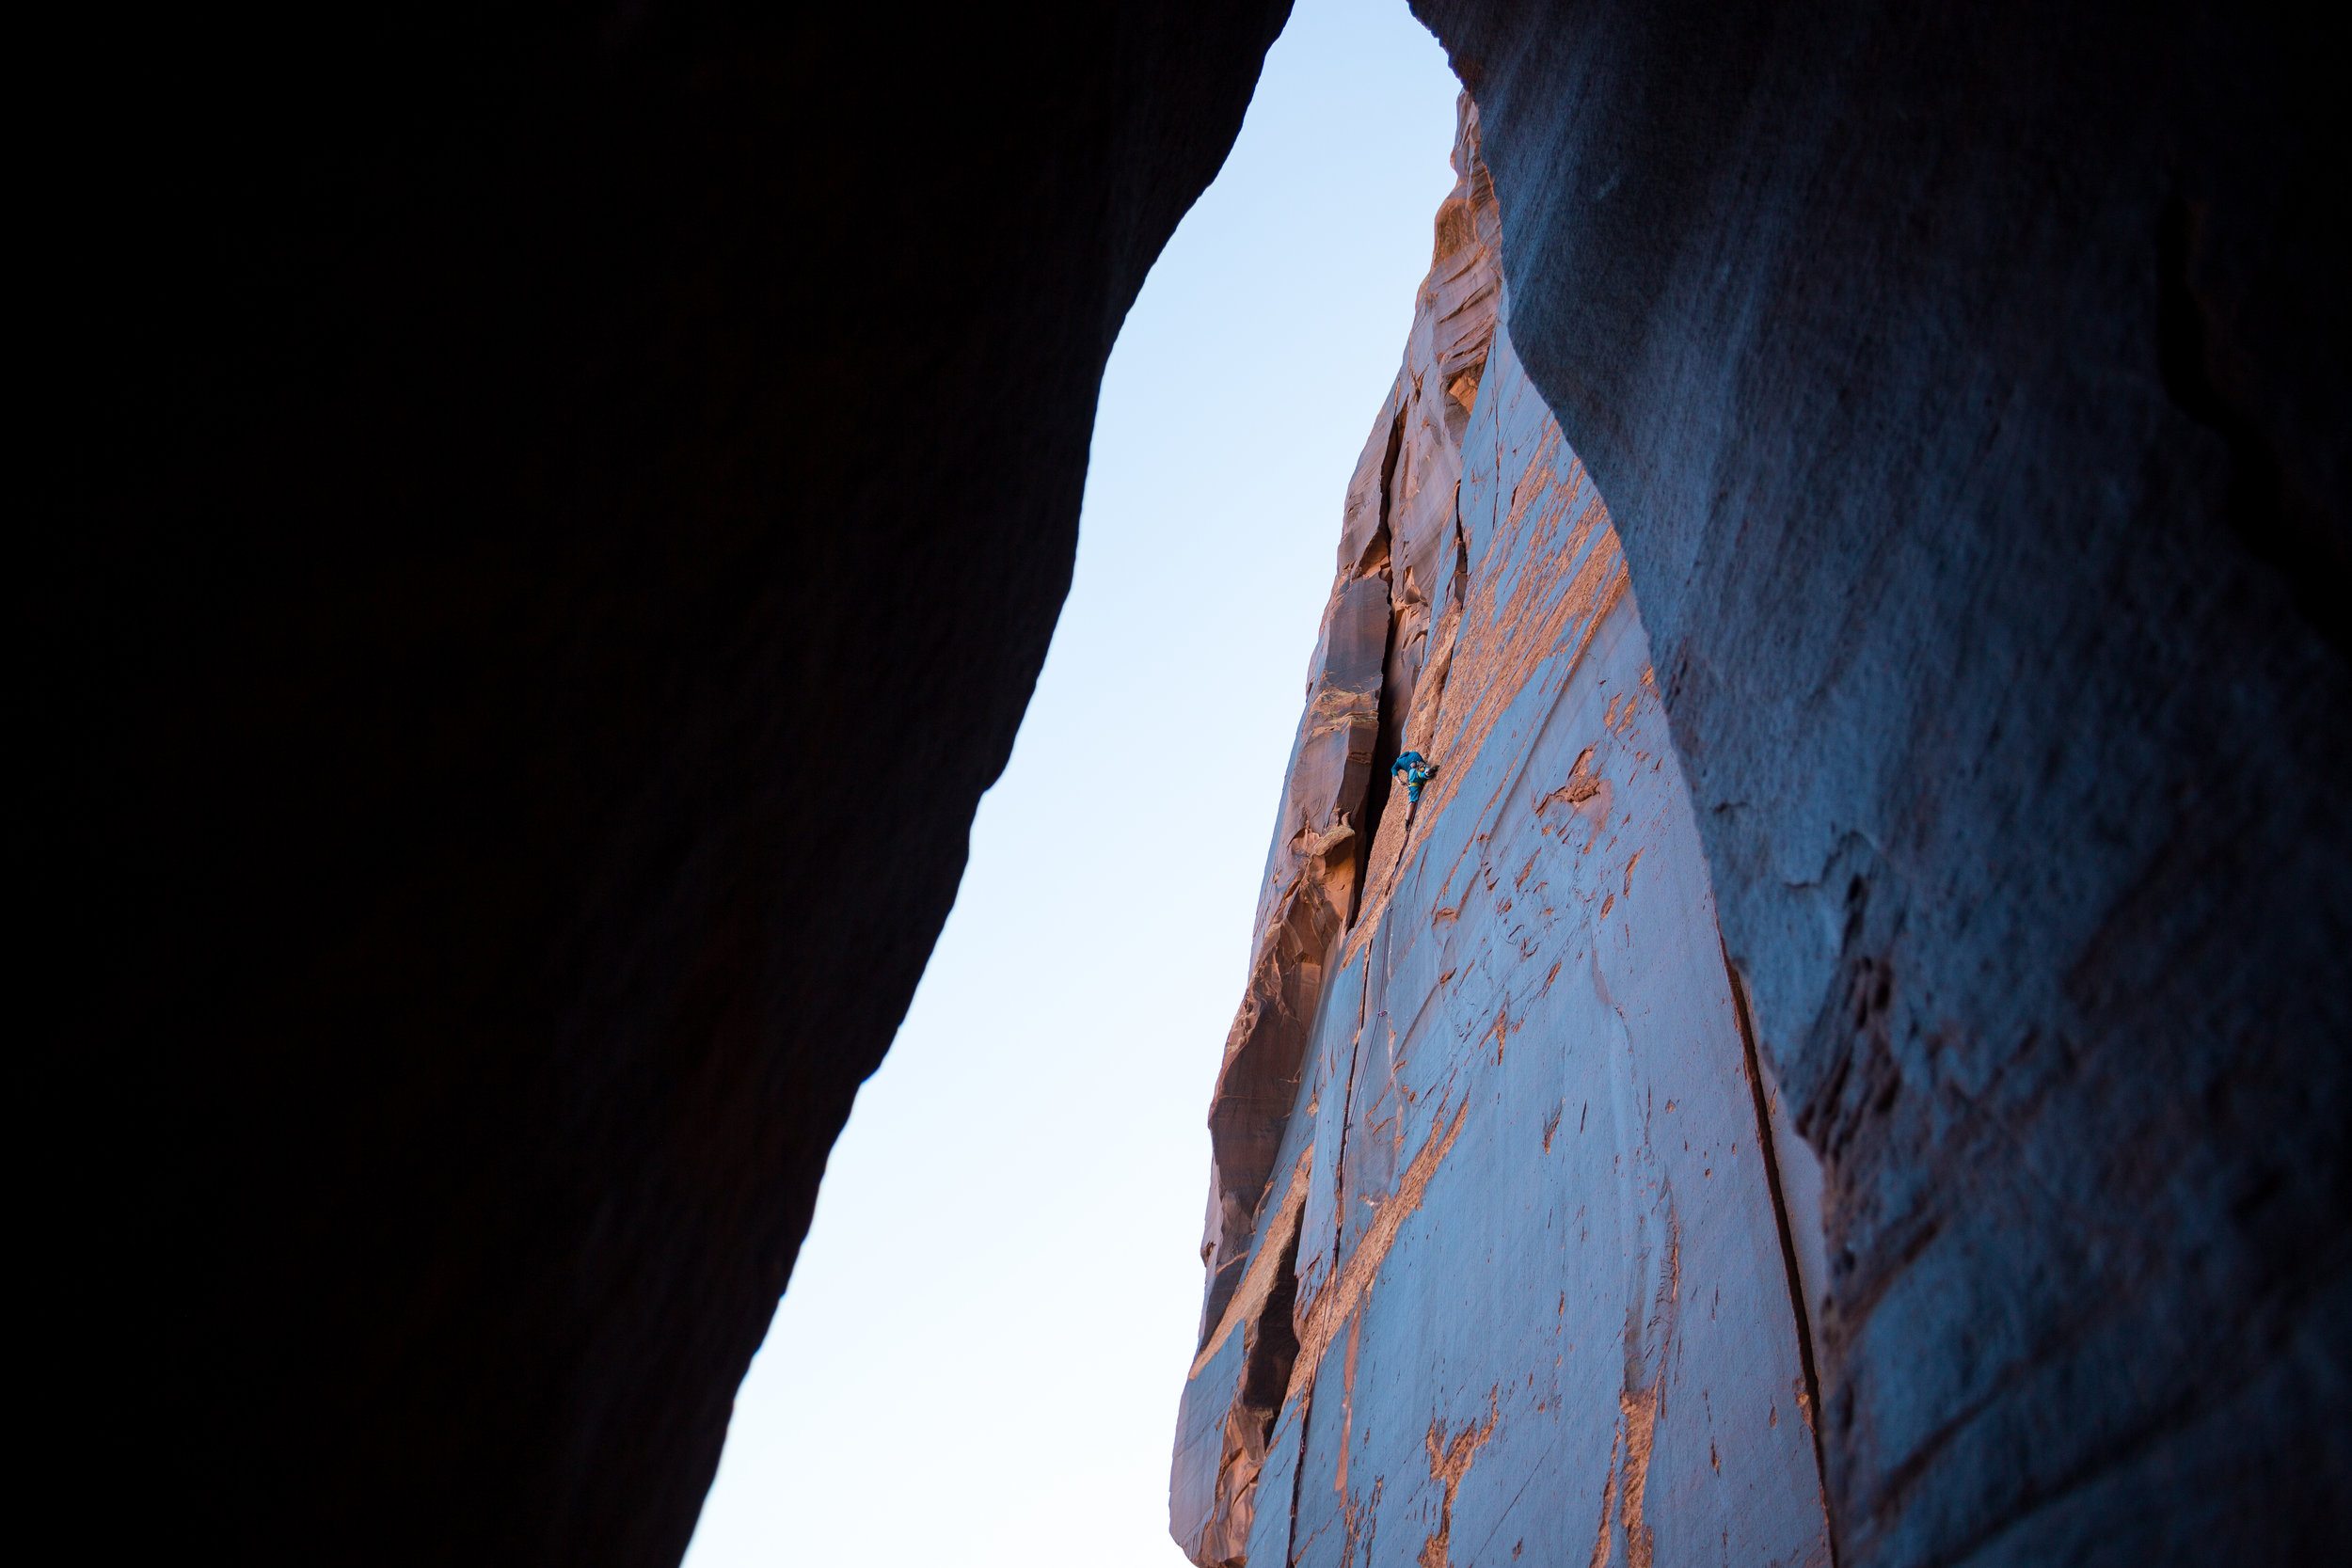 Jack Plantz working up Casey's Route (5.10+) on the Optimator Wall.